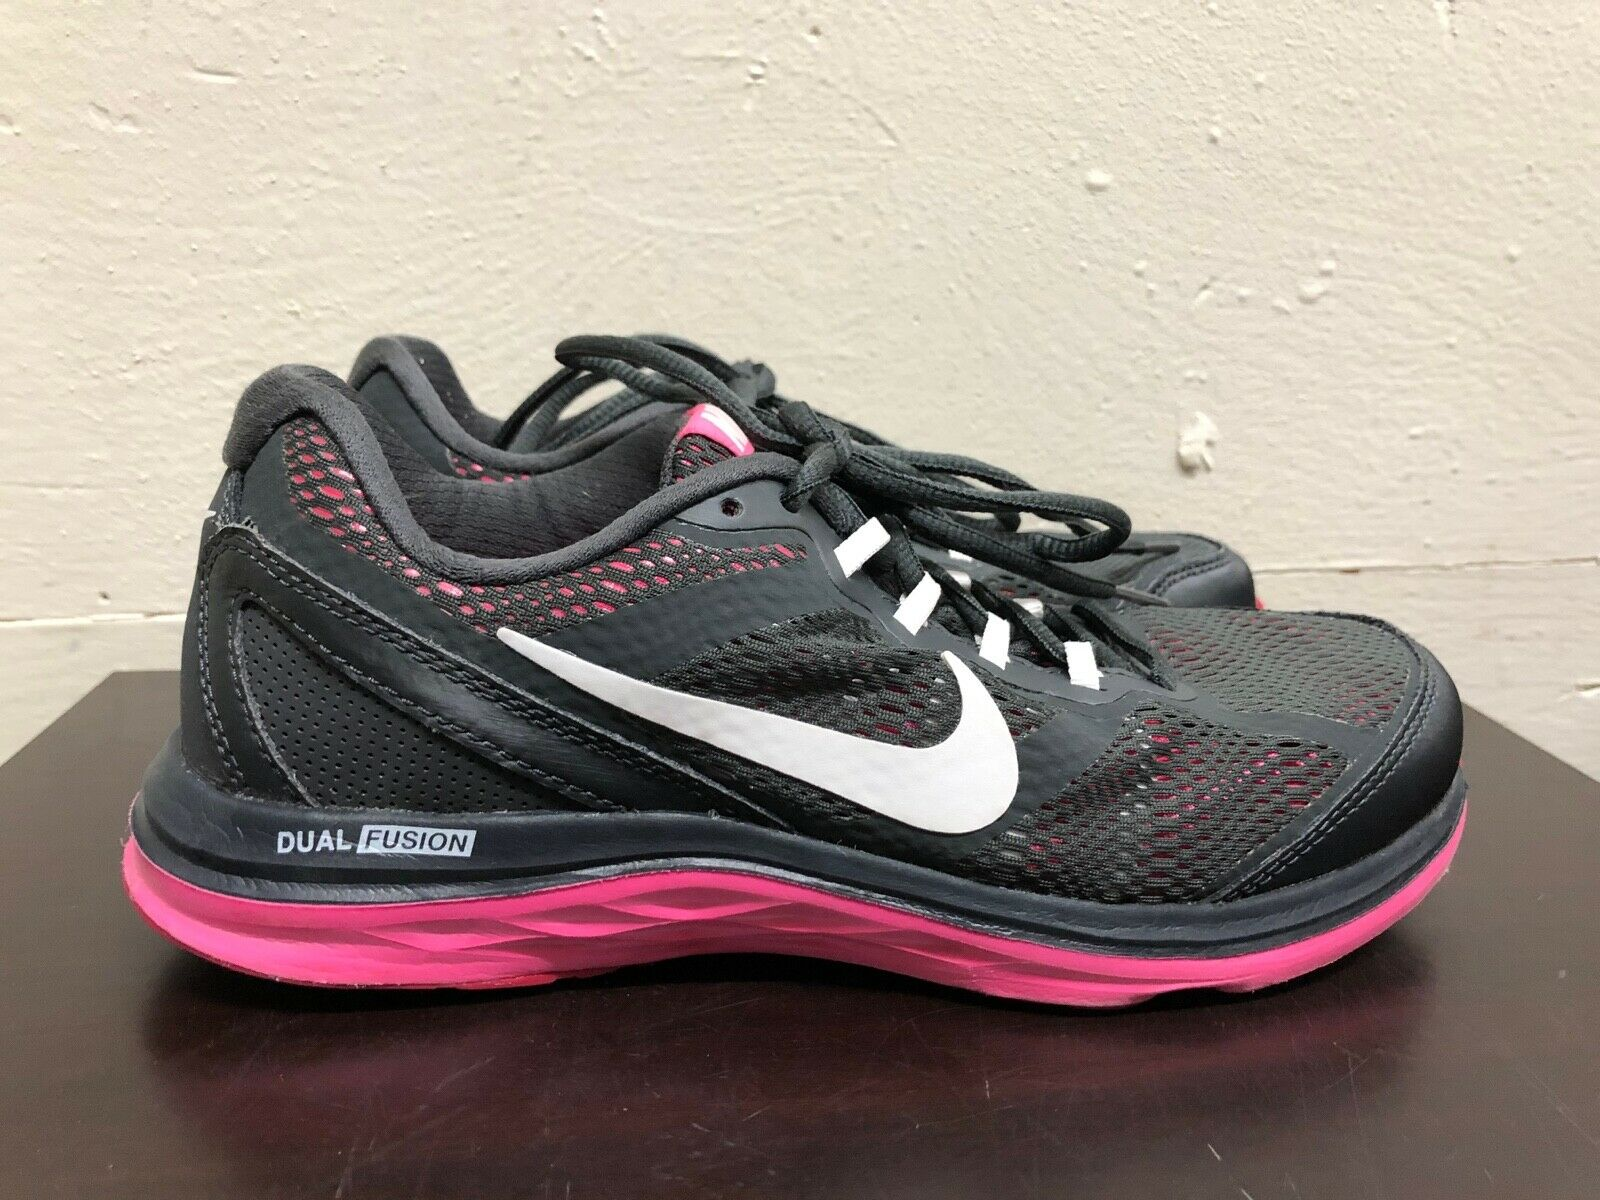 Anestésico morfina café  Nike Dual Fusion Run 3 Running Shoes Pink/Black Women Size US 7.5 653594  003 for sale online